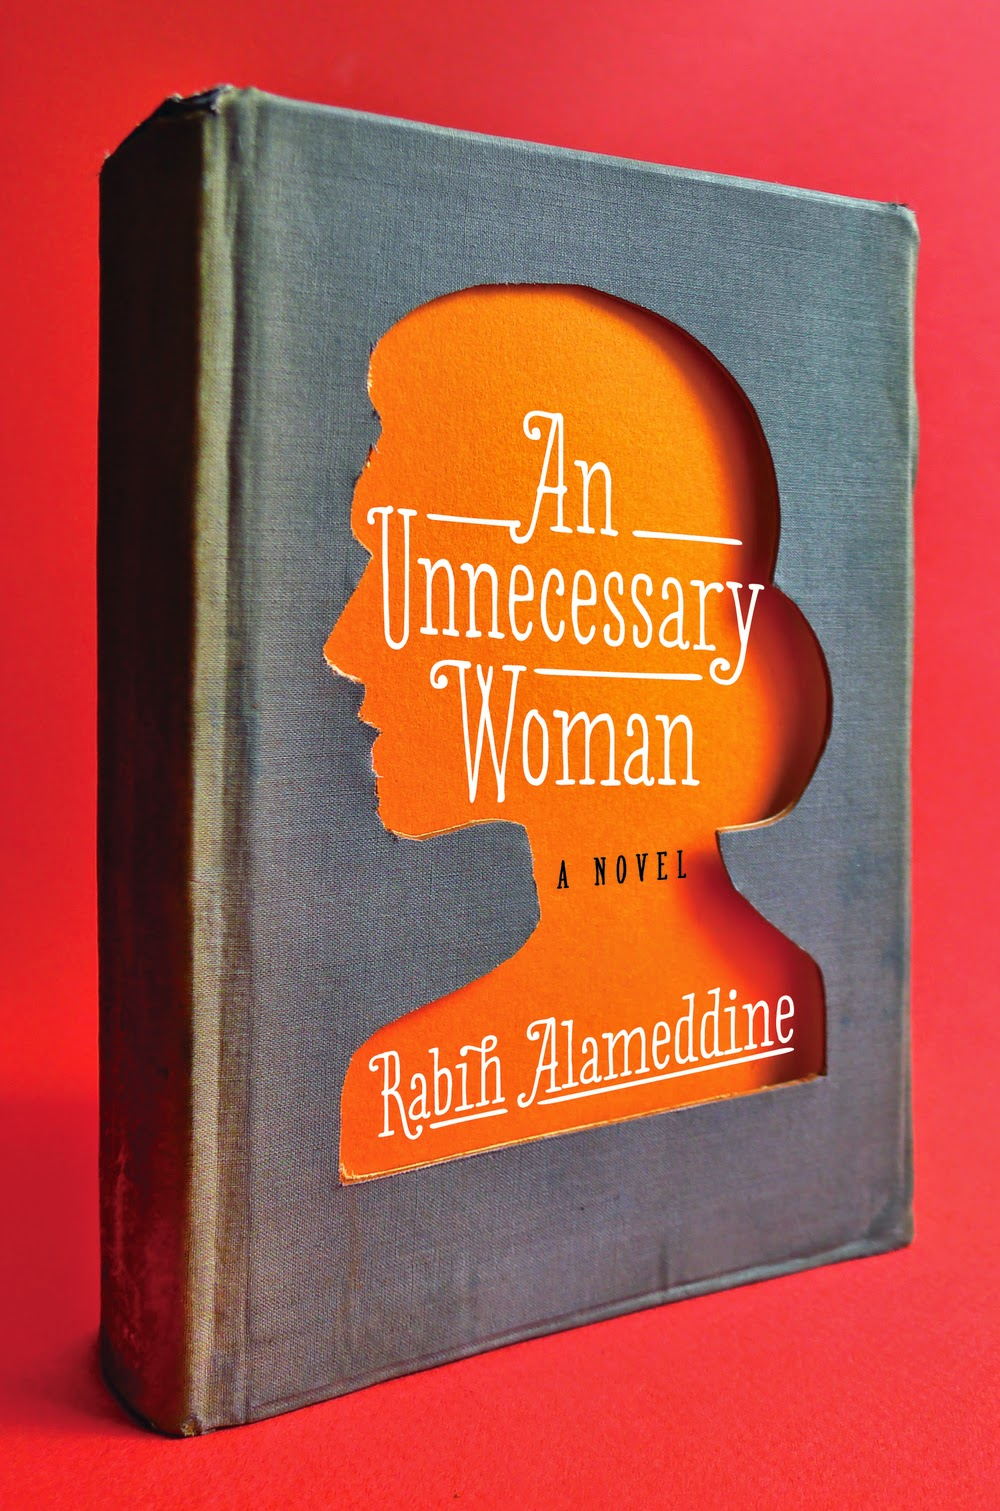 http://discover.halifaxpubliclibraries.ca/?q=title:unnecessary%20woman